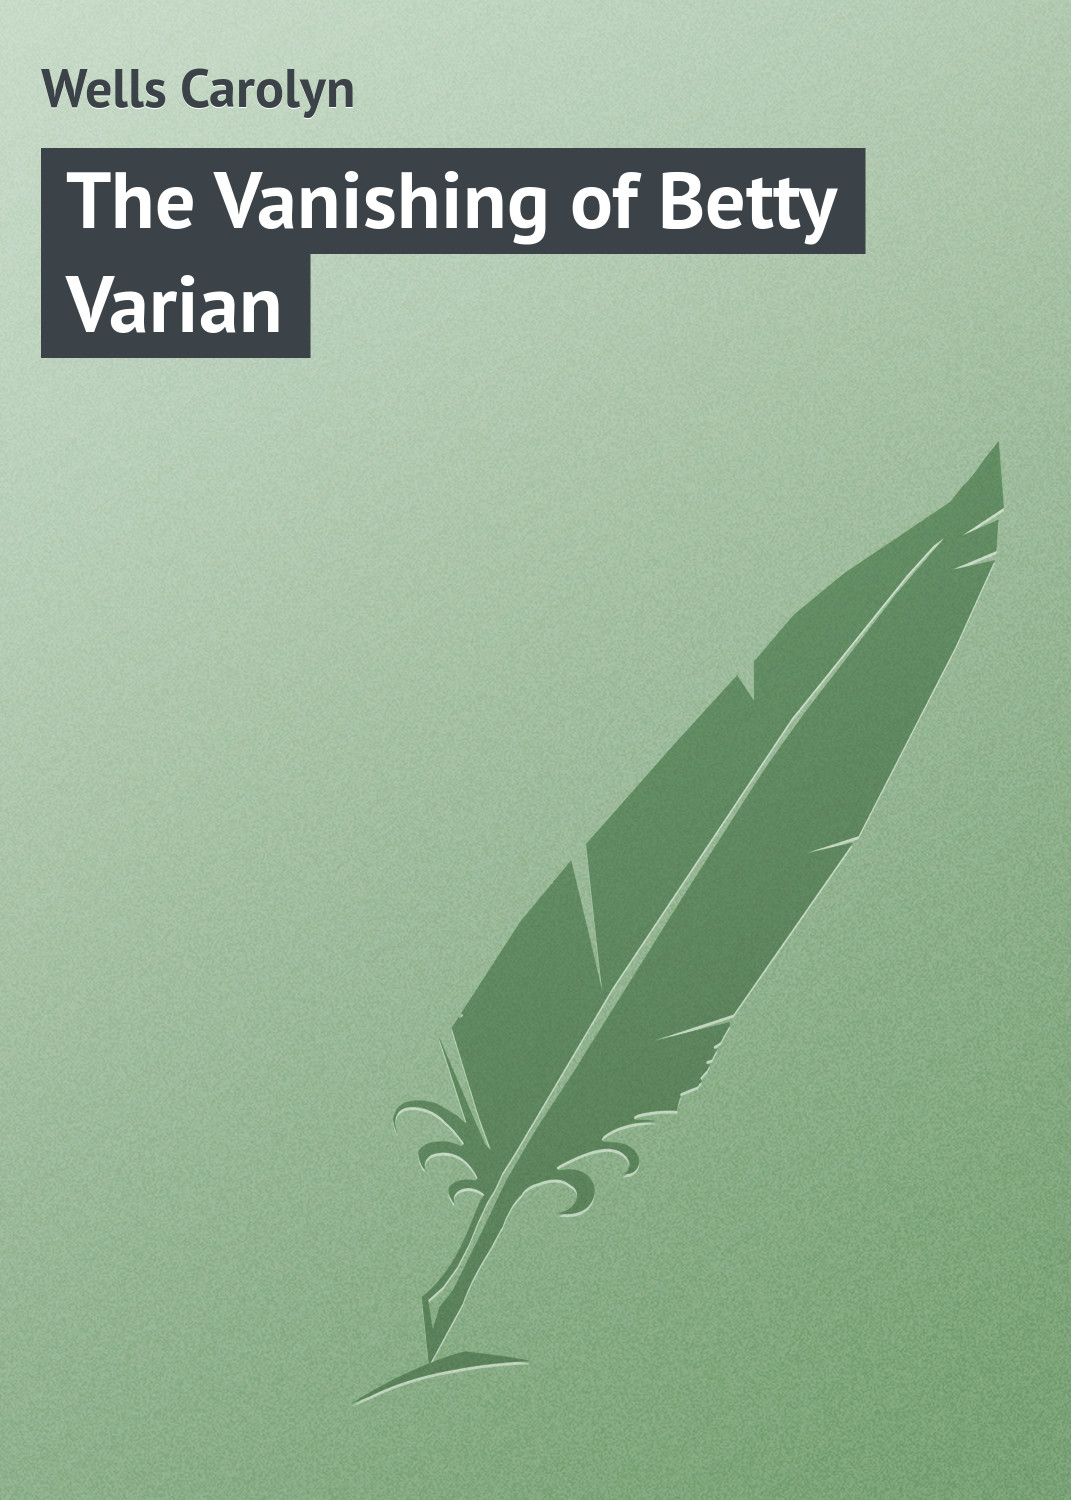 лучшая цена Wells Carolyn The Vanishing of Betty Varian